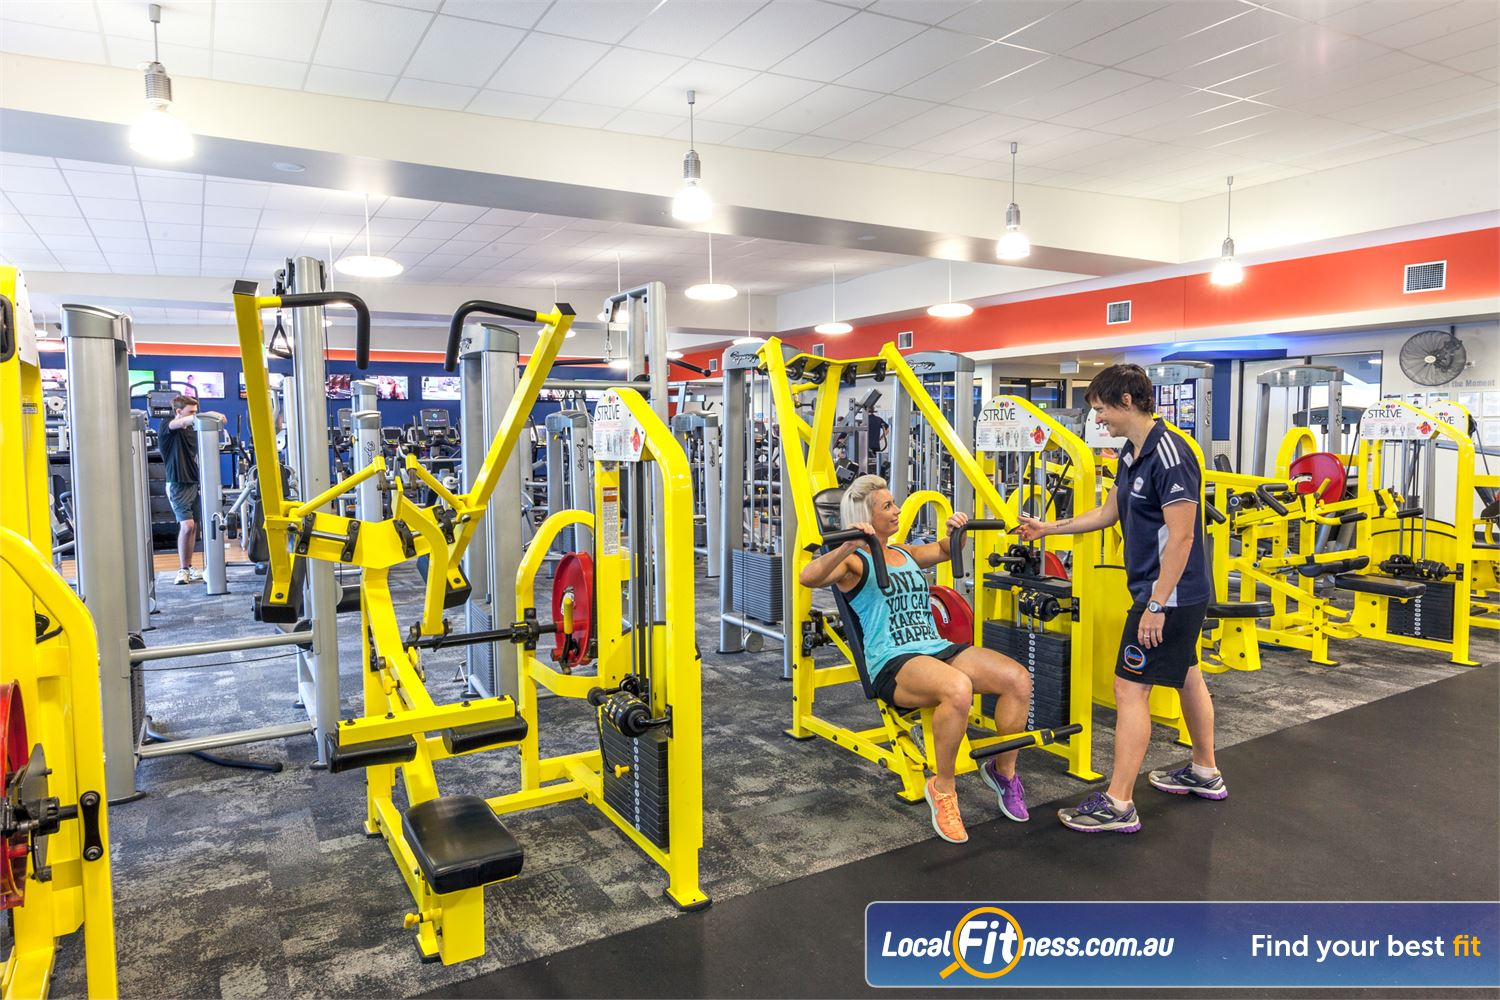 Goodlife Health Clubs Caloundra Our Caloundra gym includes the innovative and state of the art equipment.